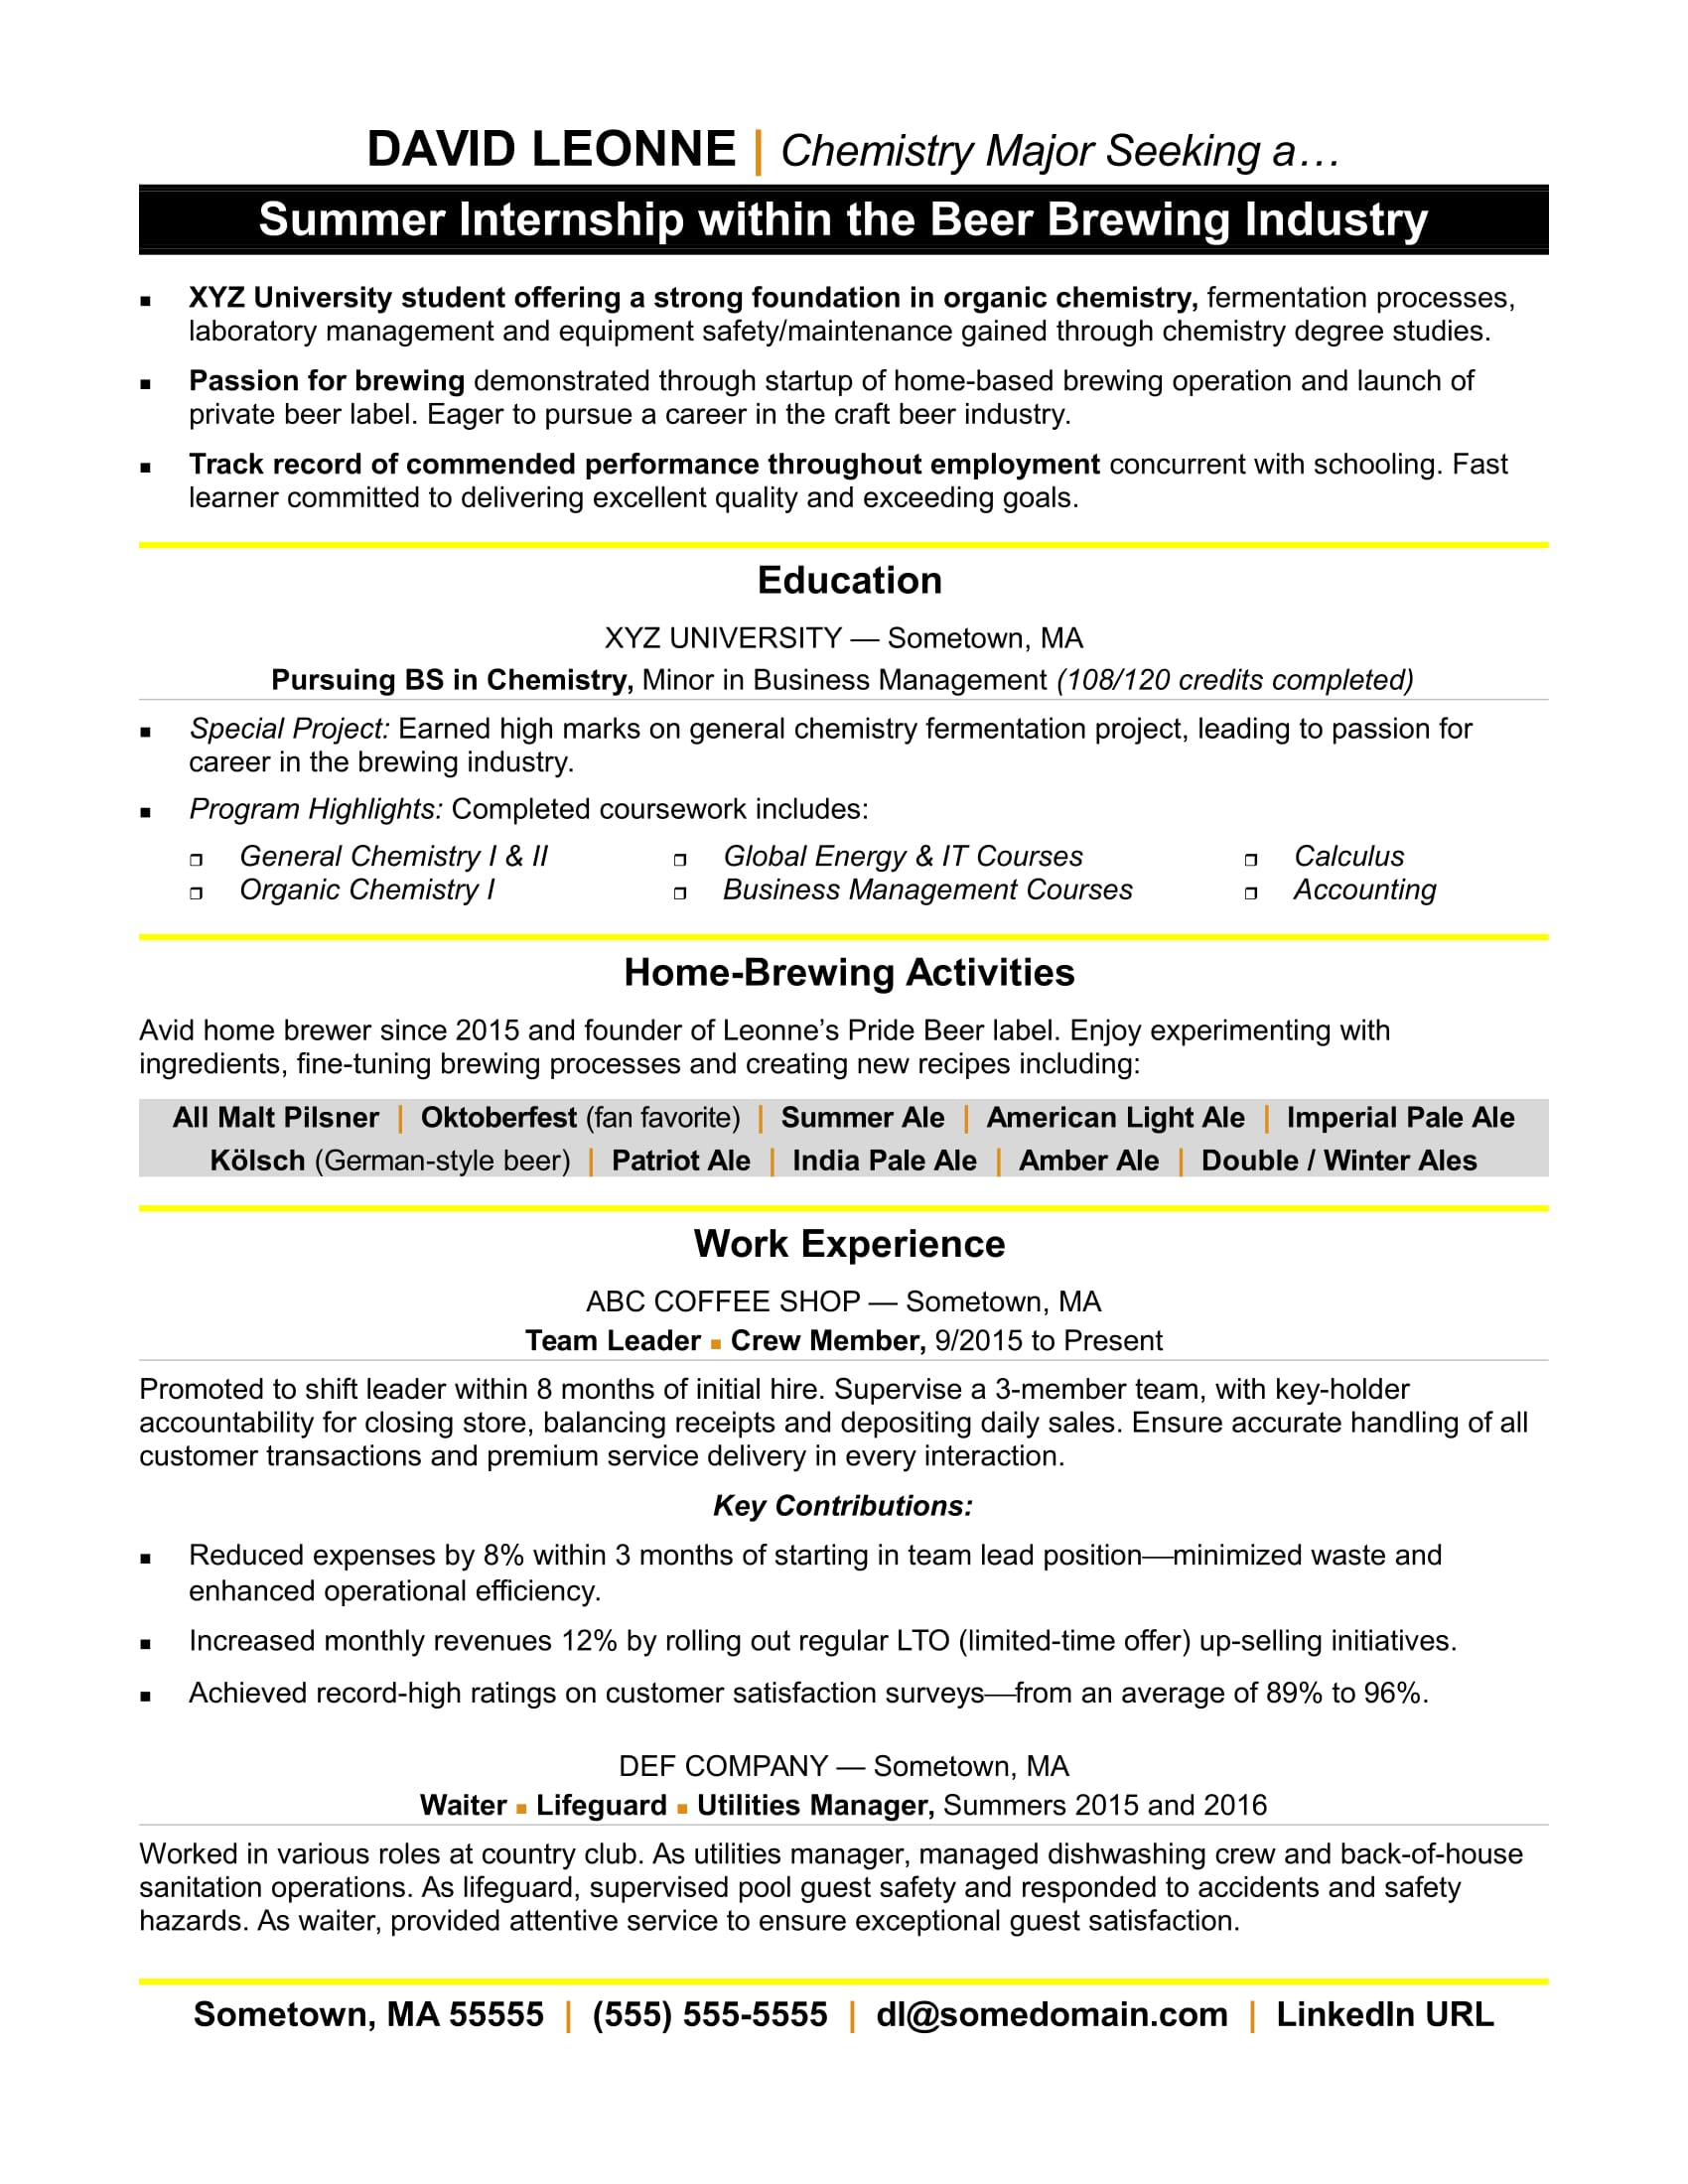 resume for internship monster template with experience cardstock paper software engineer Resume Resume Template With Internship Experience